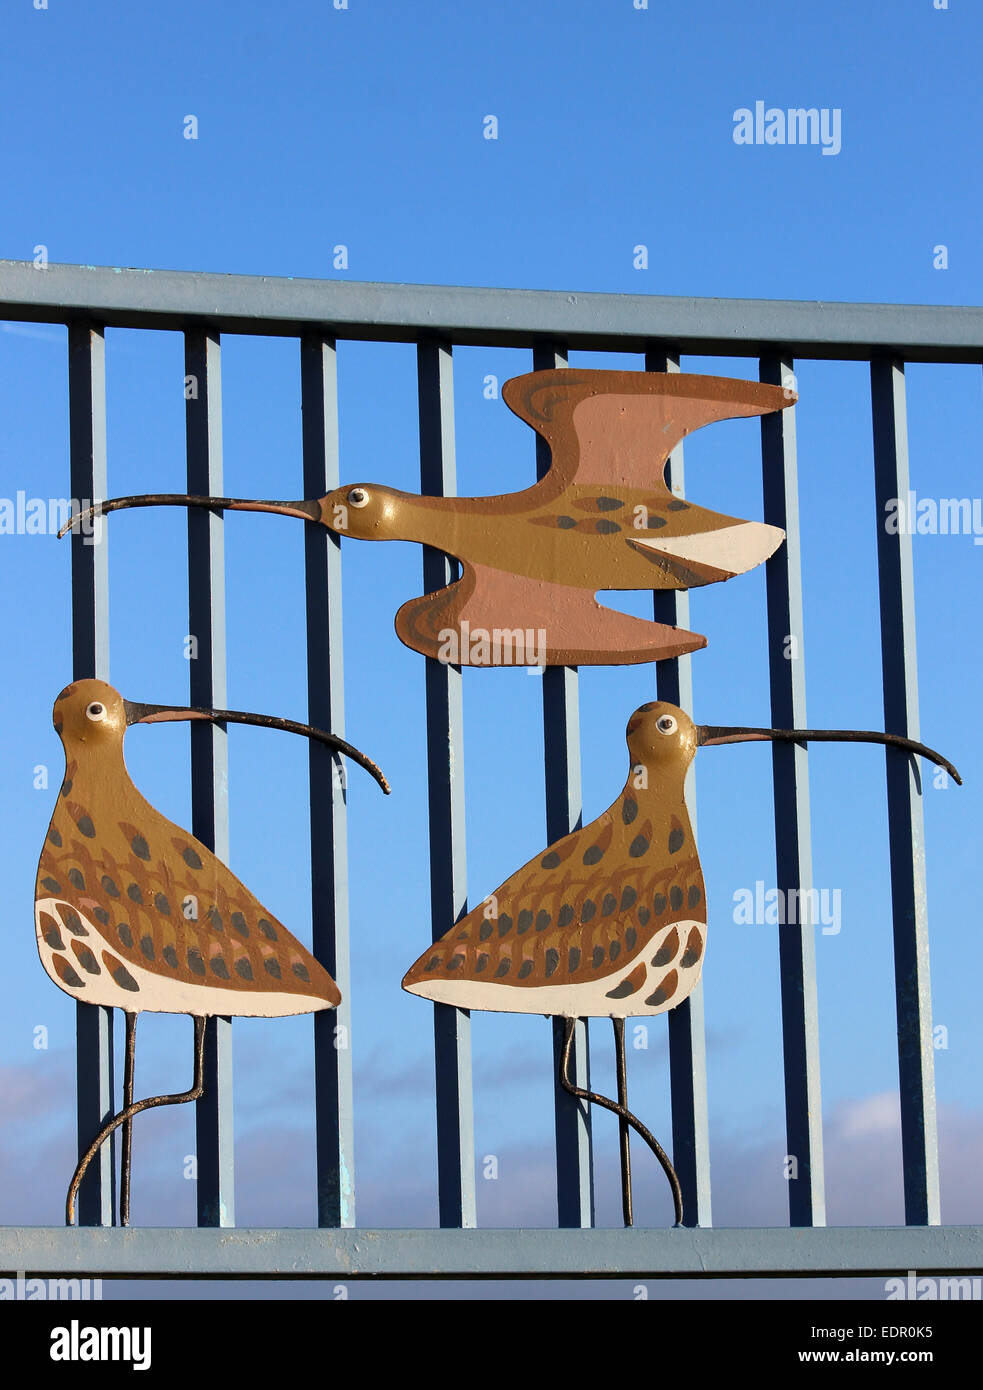 Part of the artwork for the Tern project on Morecambe promenade showing birds in flight and on ground on railings. - Stock Image